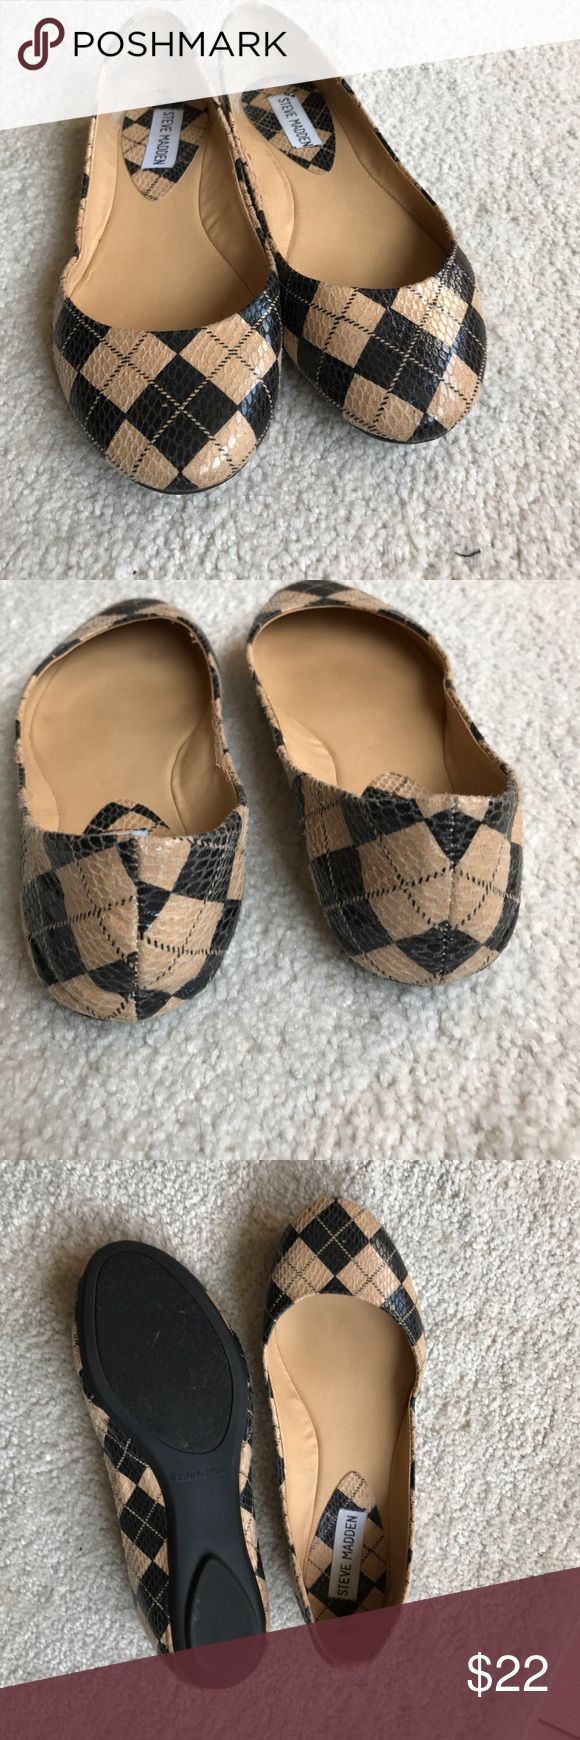 Steve Madden faux snake skin argyle flat Steve Madden faux snake skin in tan and black argyle. Size 7M maybe worn once. Low profile slip on flats. Steve Madden Shoes Flats & Loafers